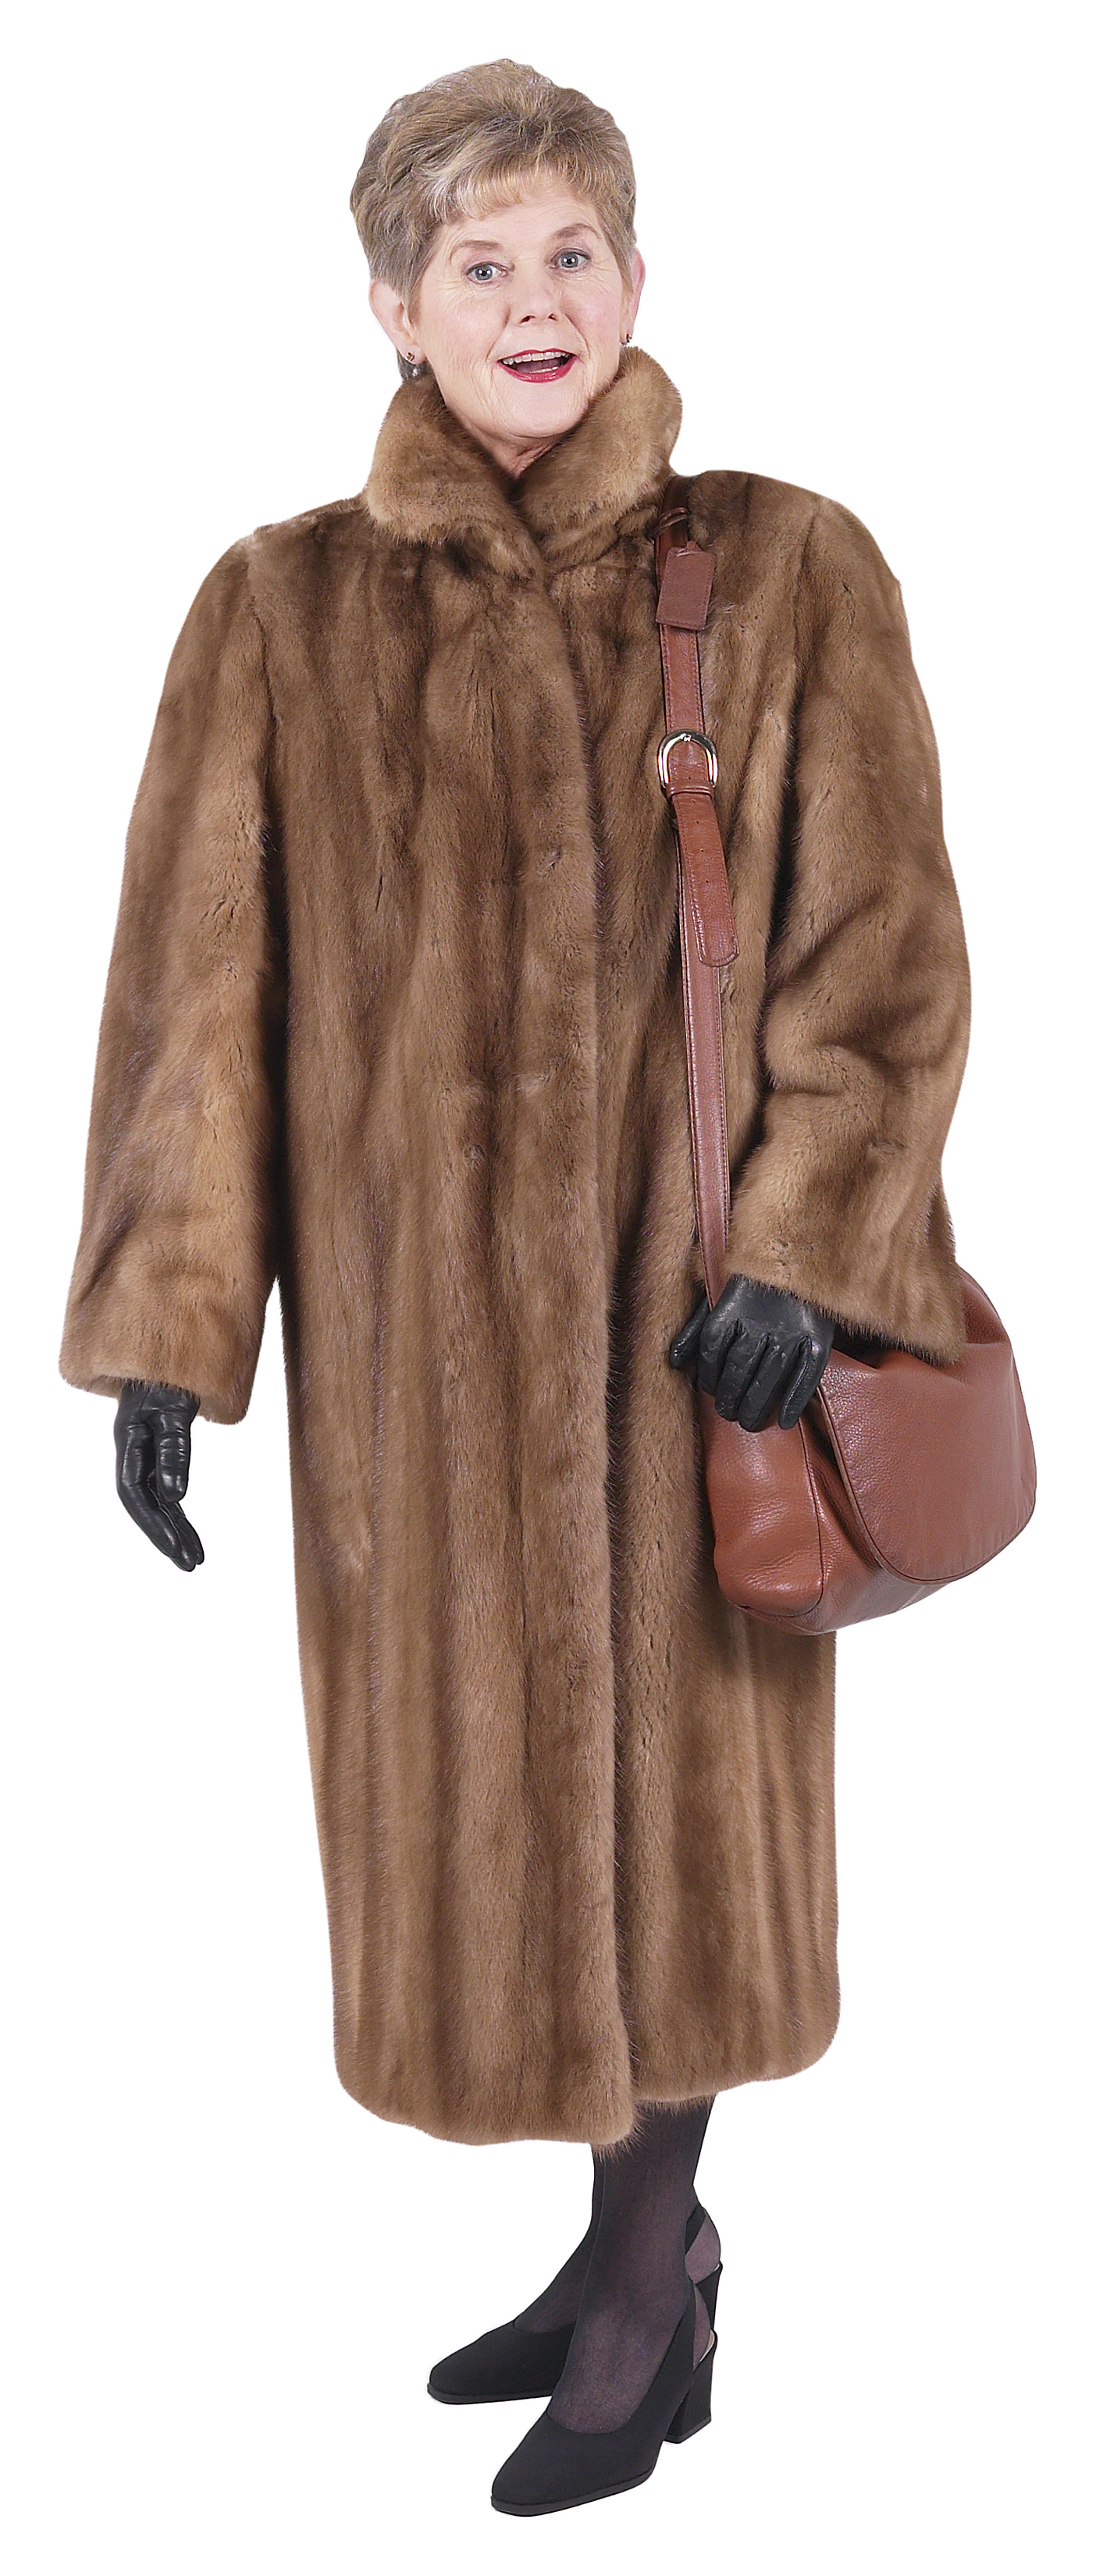 Gartenhaus Sale How To Get The Value Of A Full Length Mink Coat Our Everyday Life